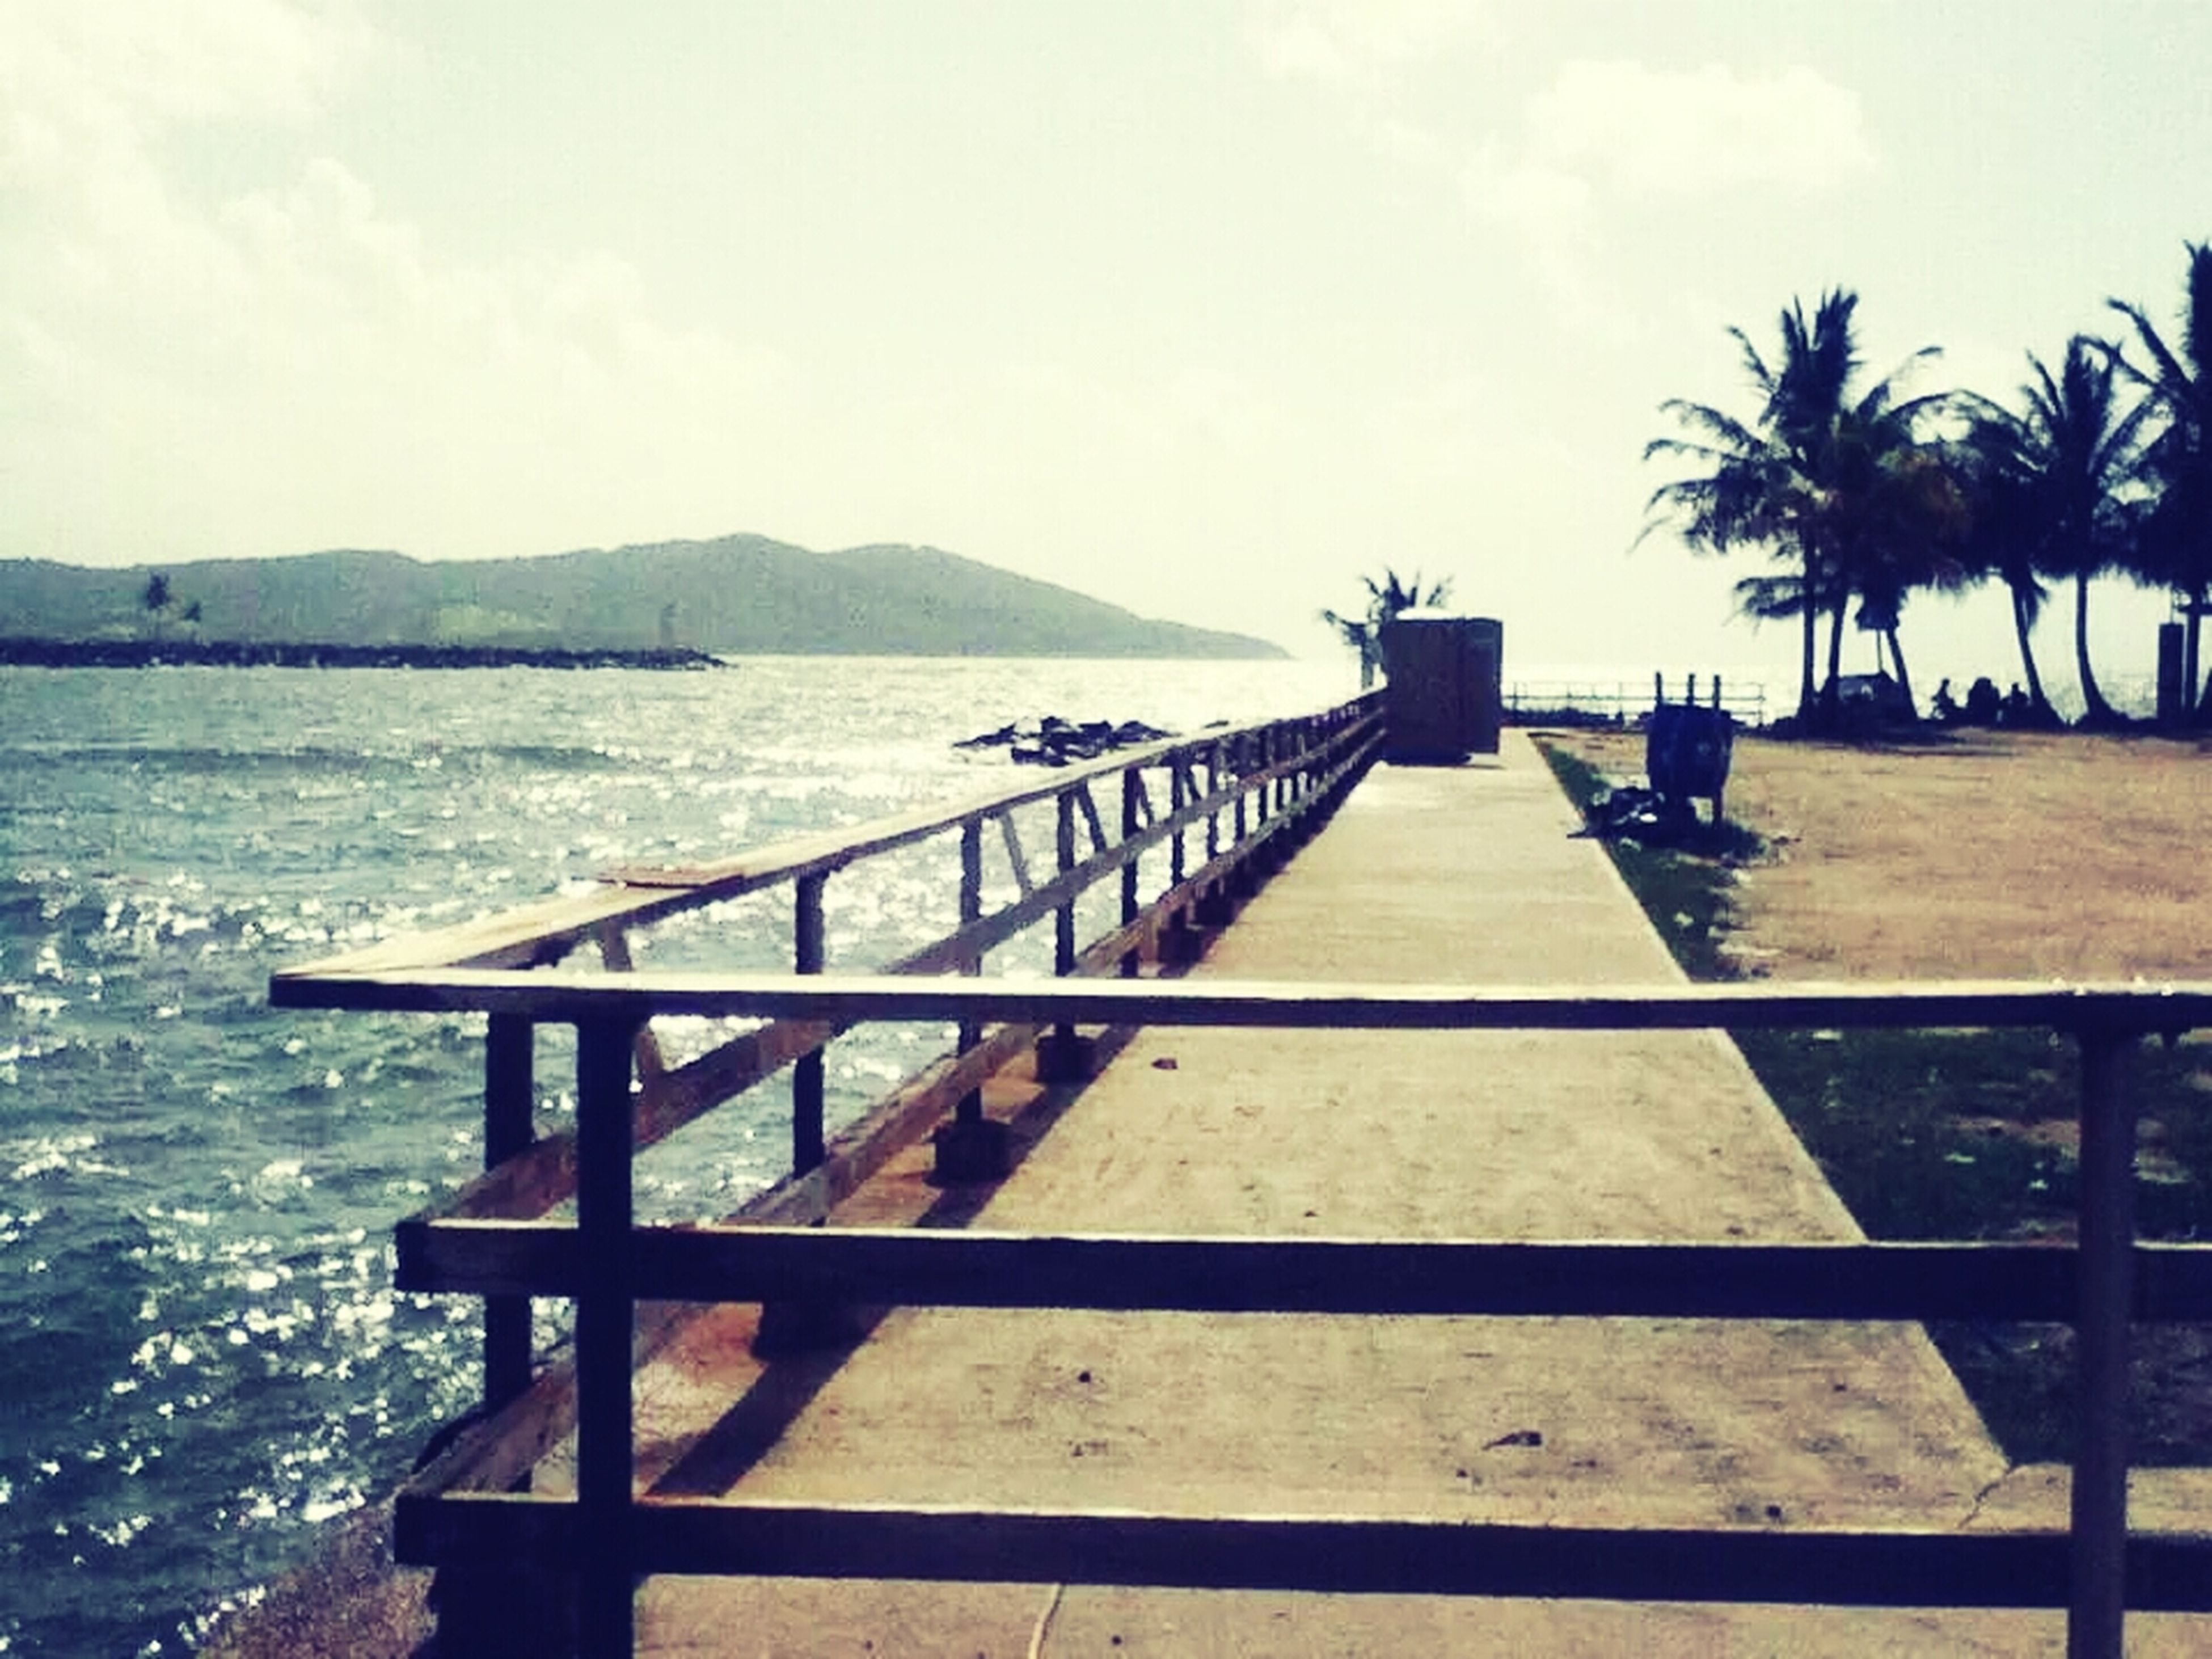 water, sea, railing, pier, sky, tranquil scene, tranquility, mountain, scenics, nature, beauty in nature, wood - material, jetty, built structure, horizon over water, the way forward, idyllic, outdoors, lake, boardwalk